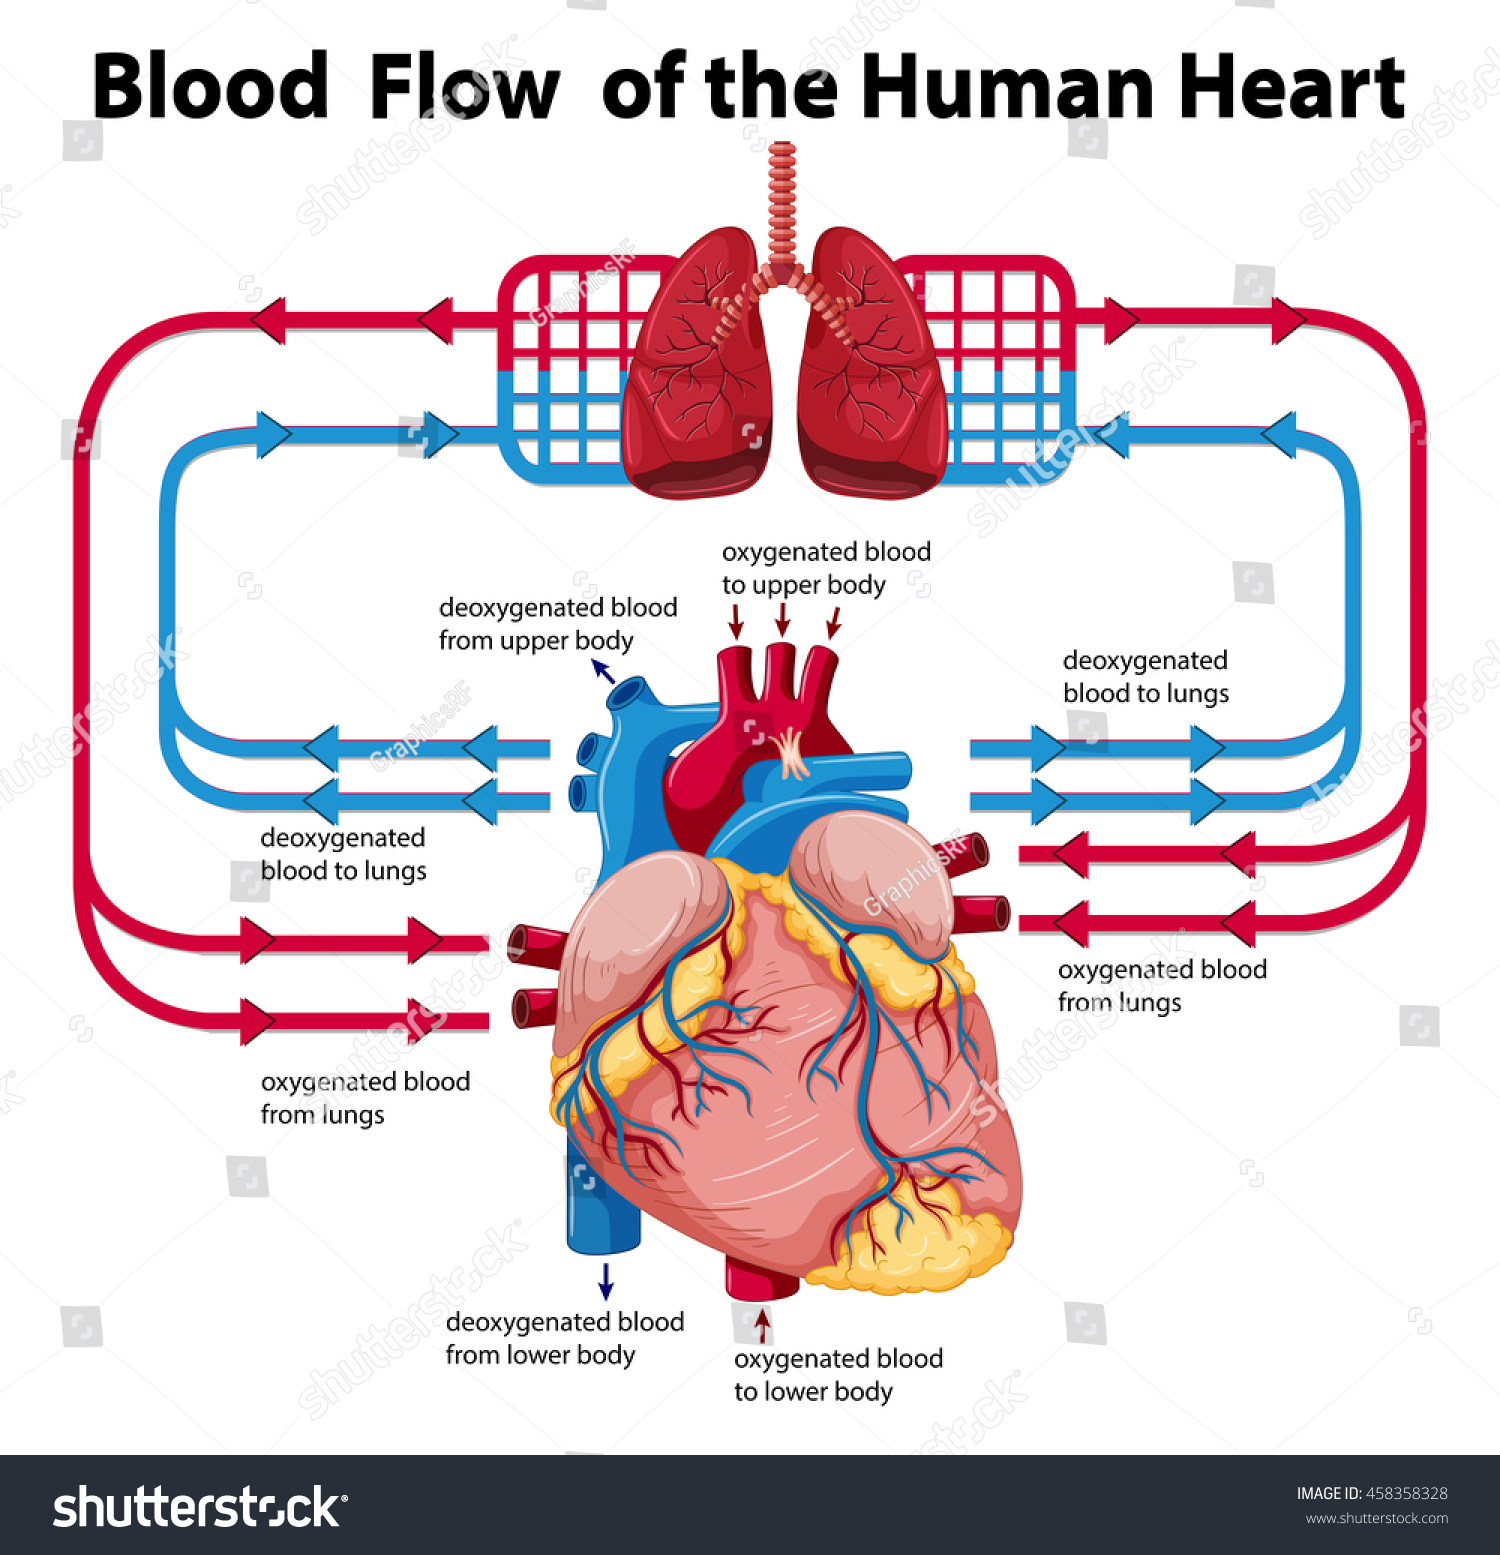 Diagram showing blood flow human heart stock vector royalty free diagram showing blood flow of human heart illustration ccuart Image collections